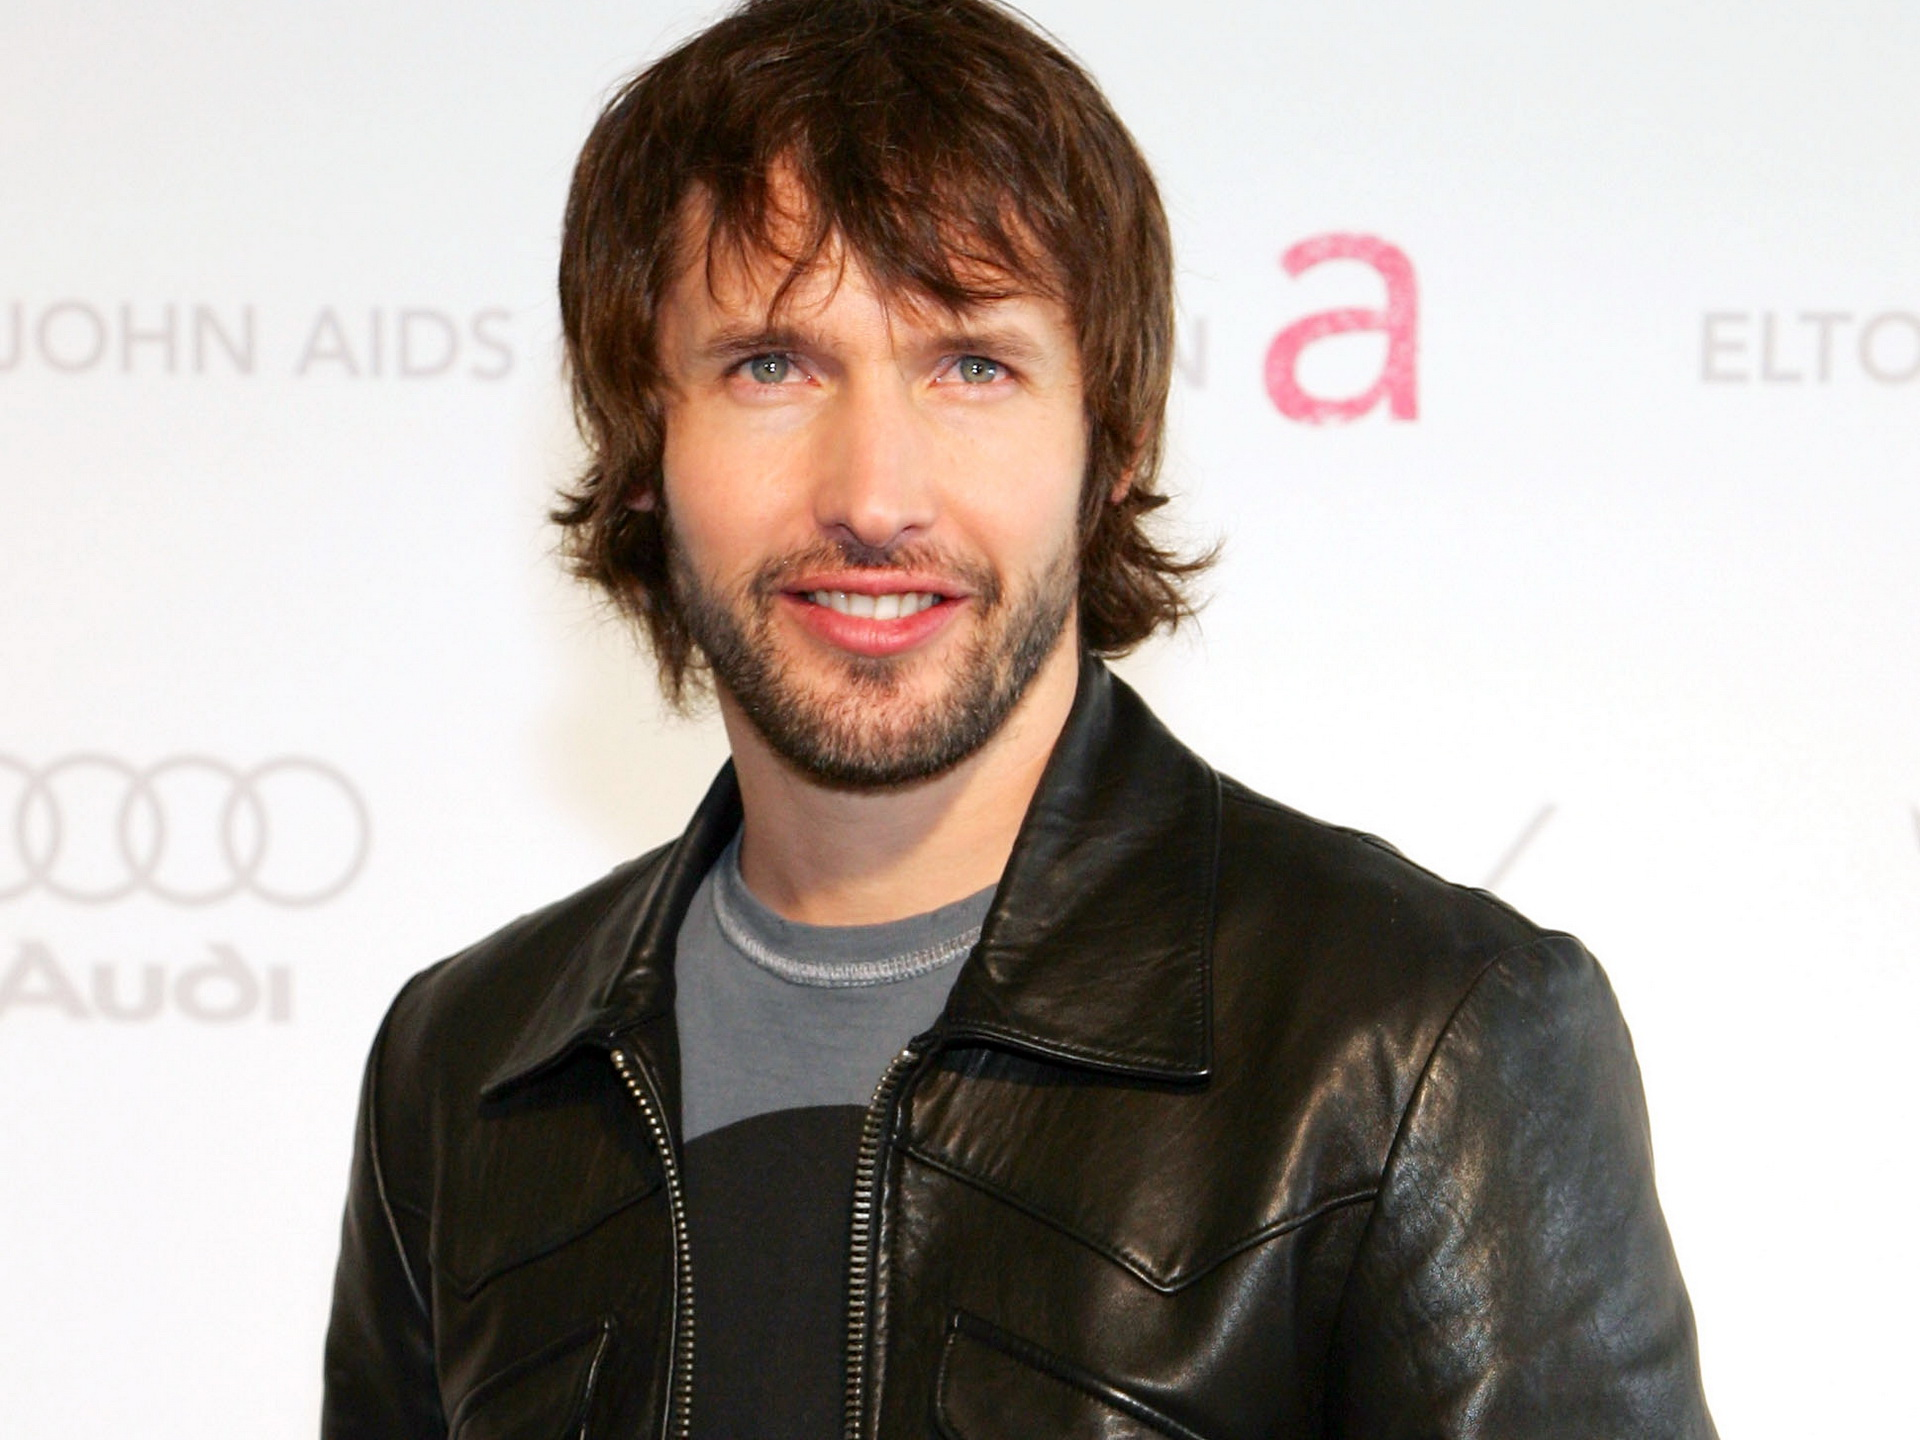 James Blunt Net Worth